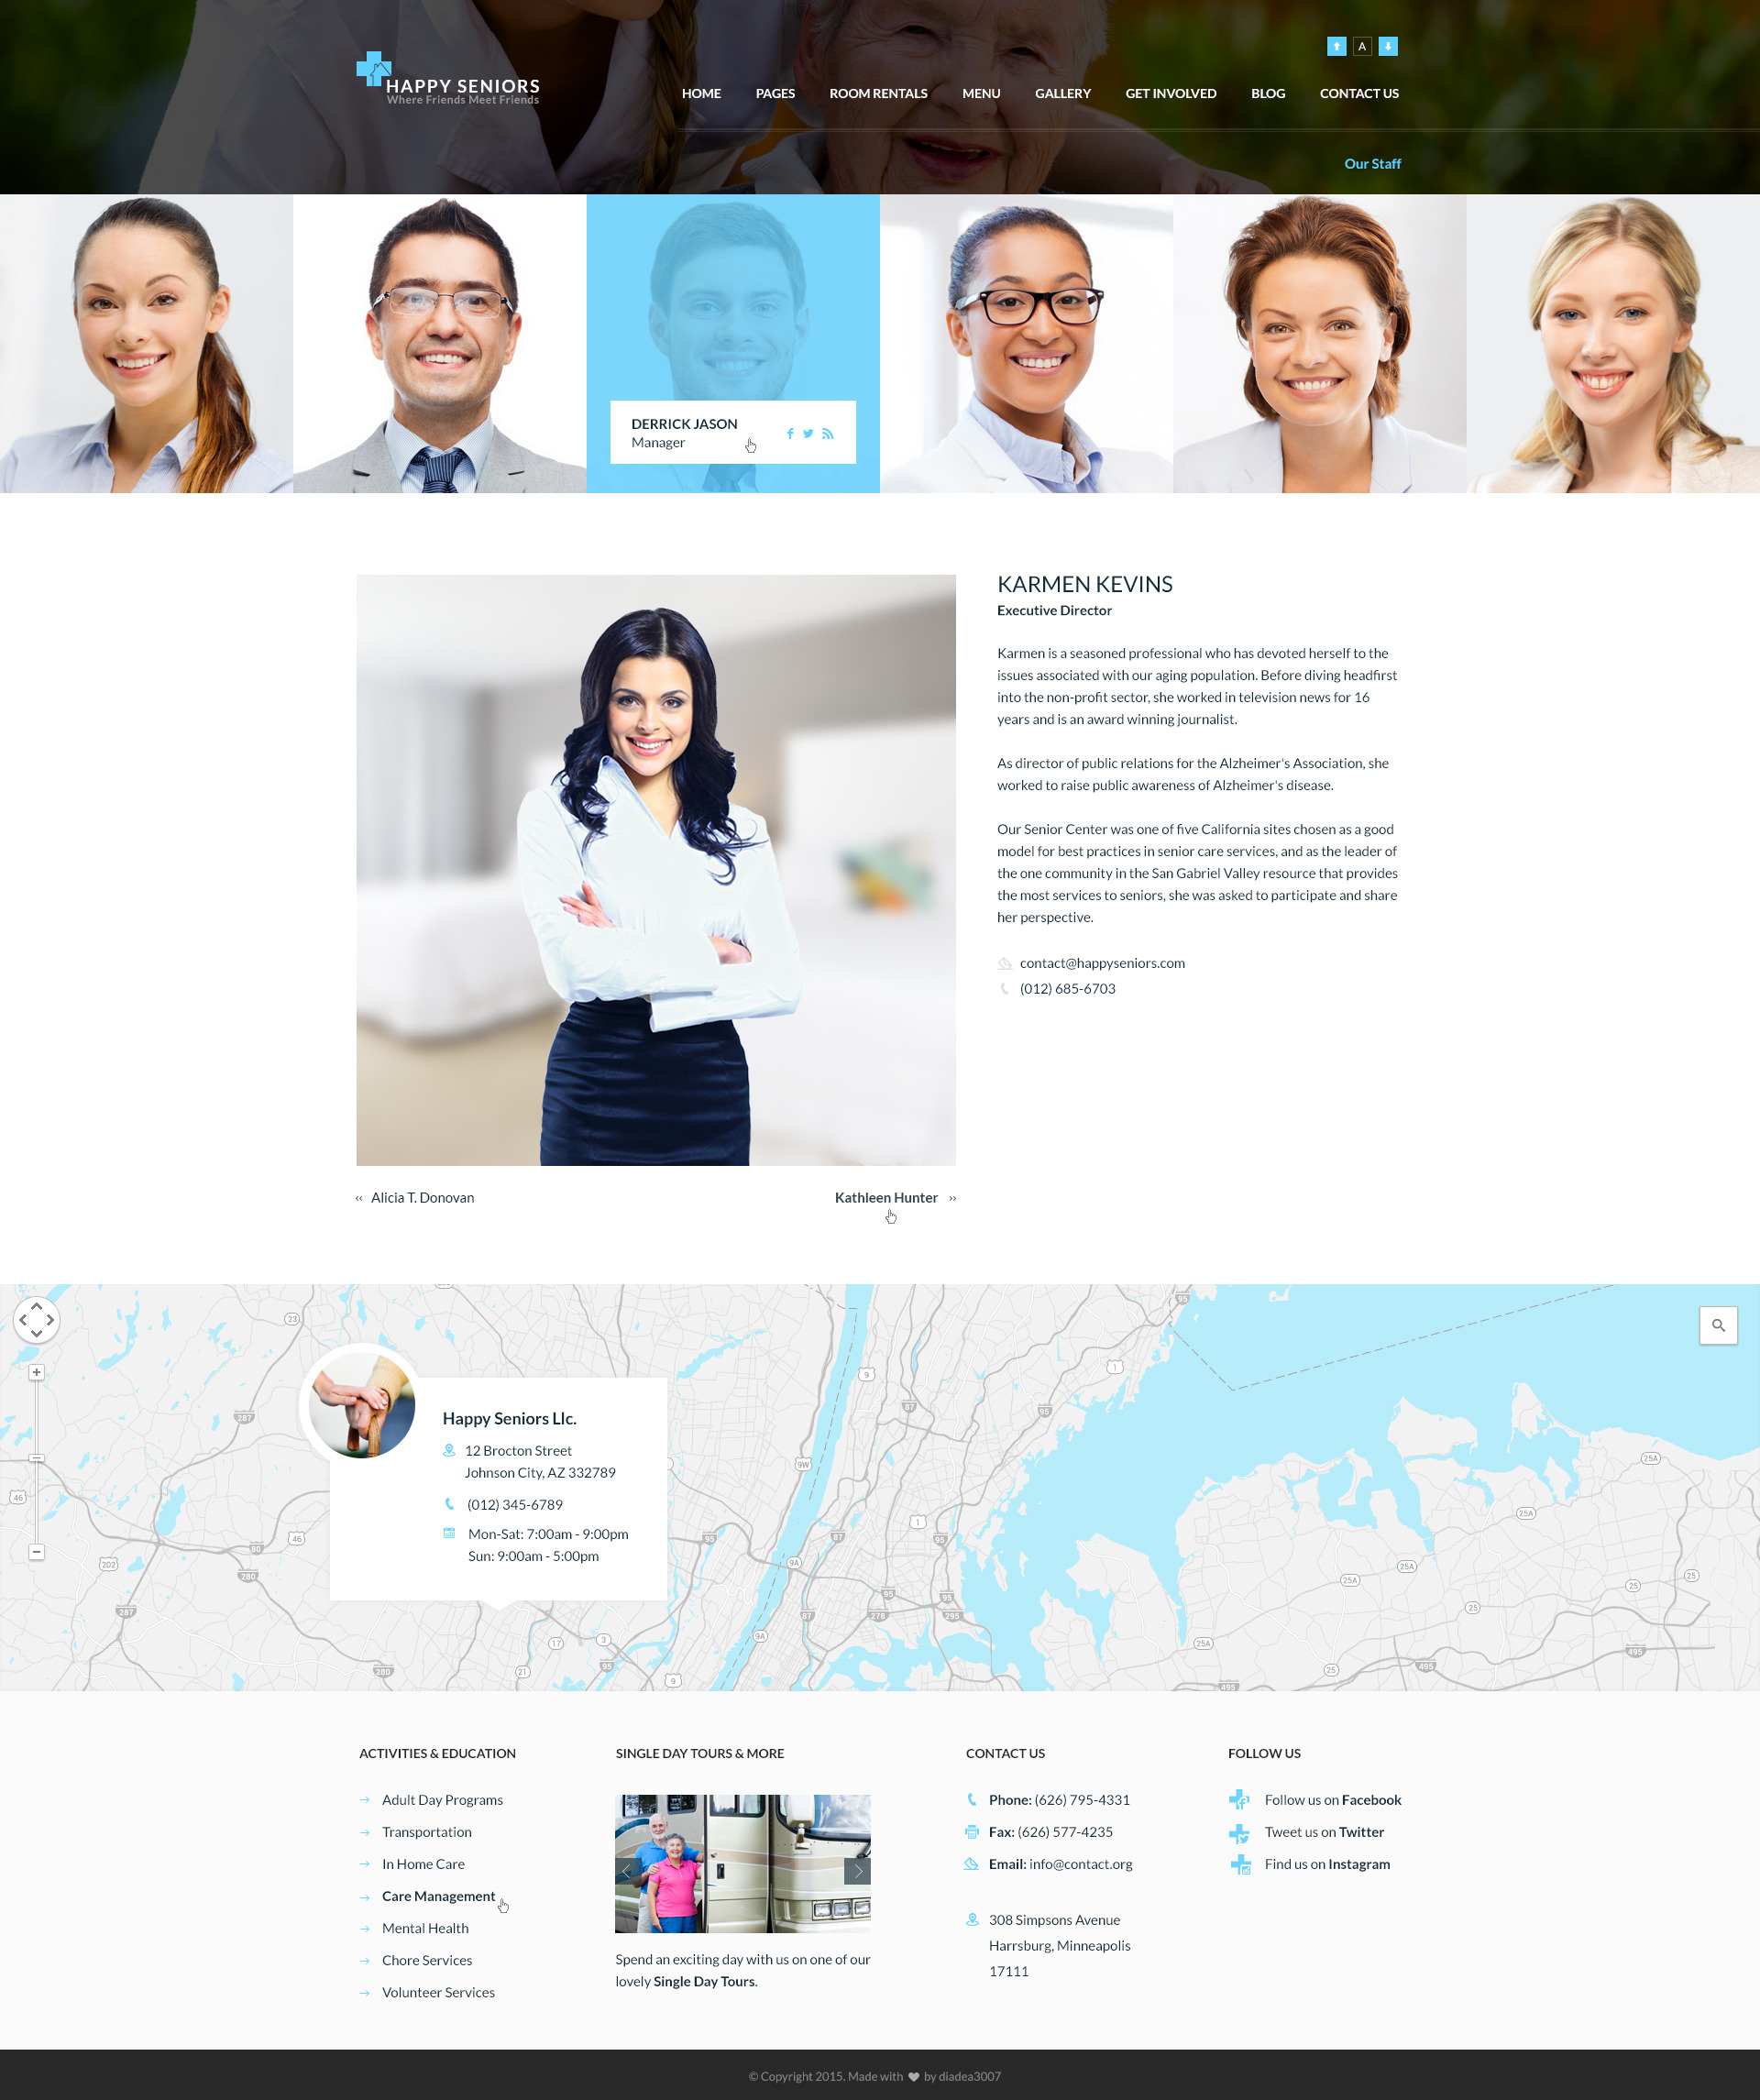 Happy seniors senior care psd template by diadea3007 themeforest 19staff board members detailedg pronofoot35fo Images